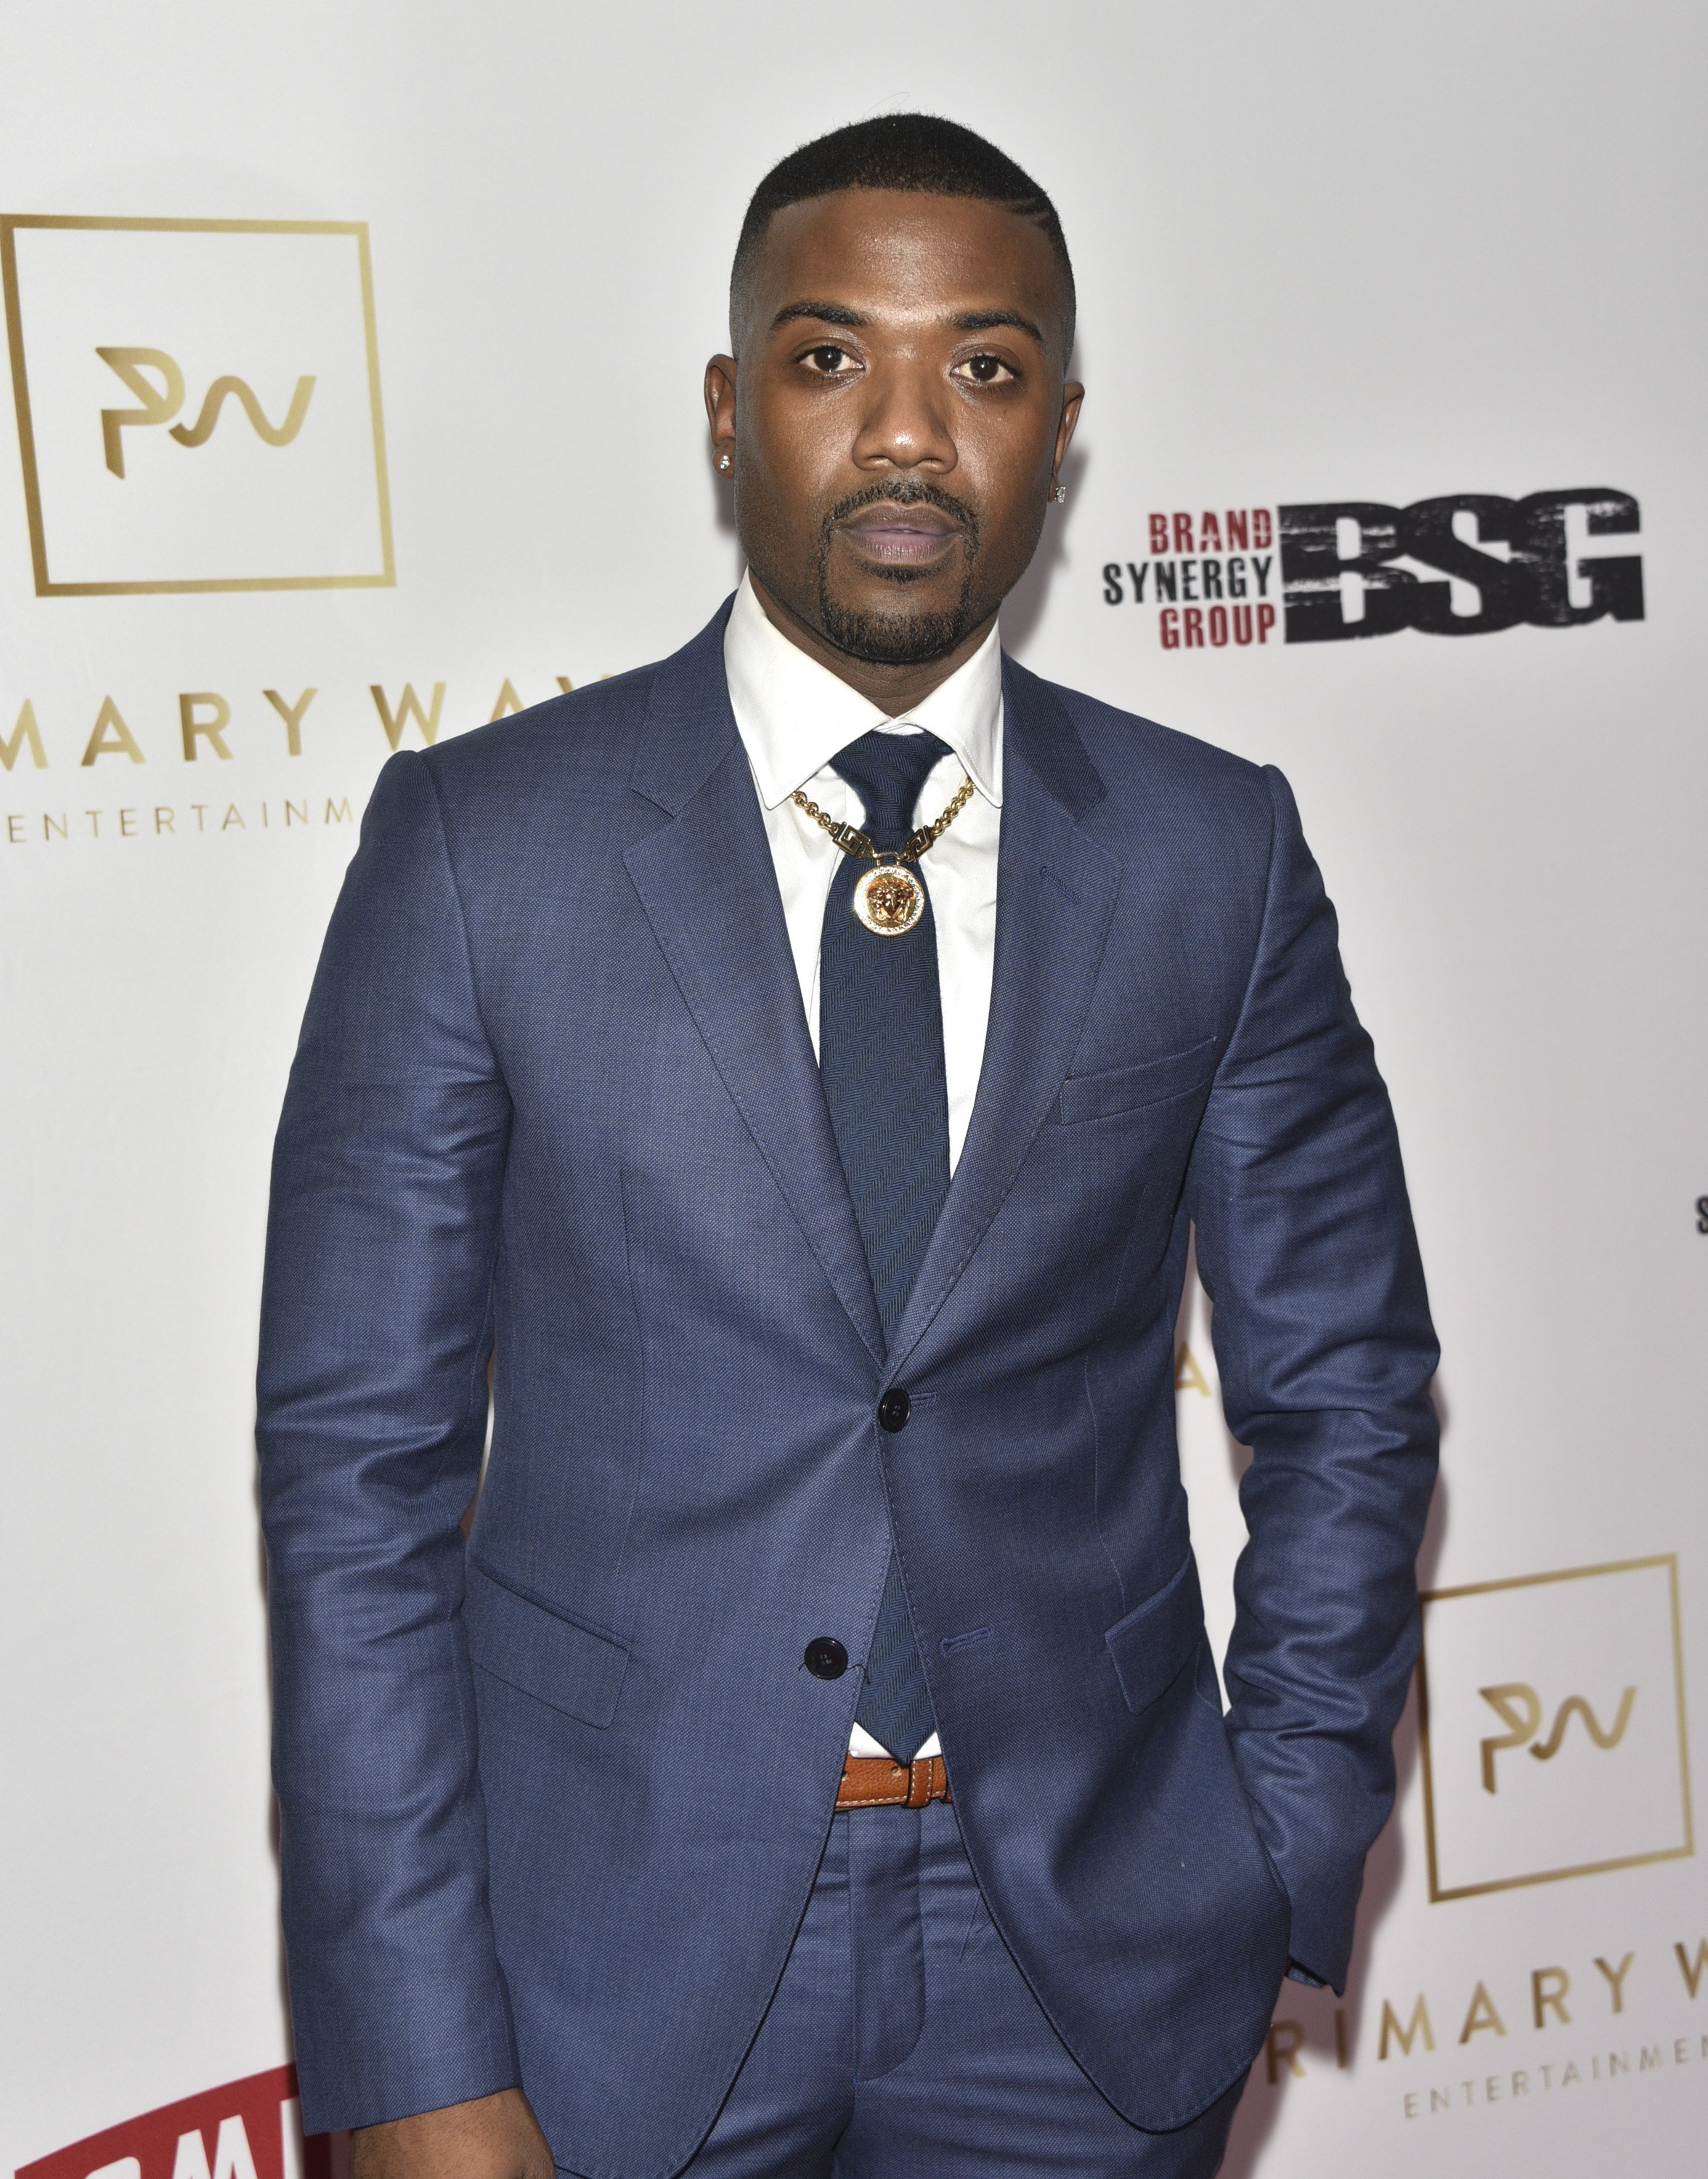 Ray J at an event in West Hollywood in February 2017. | Photo: Getty Images